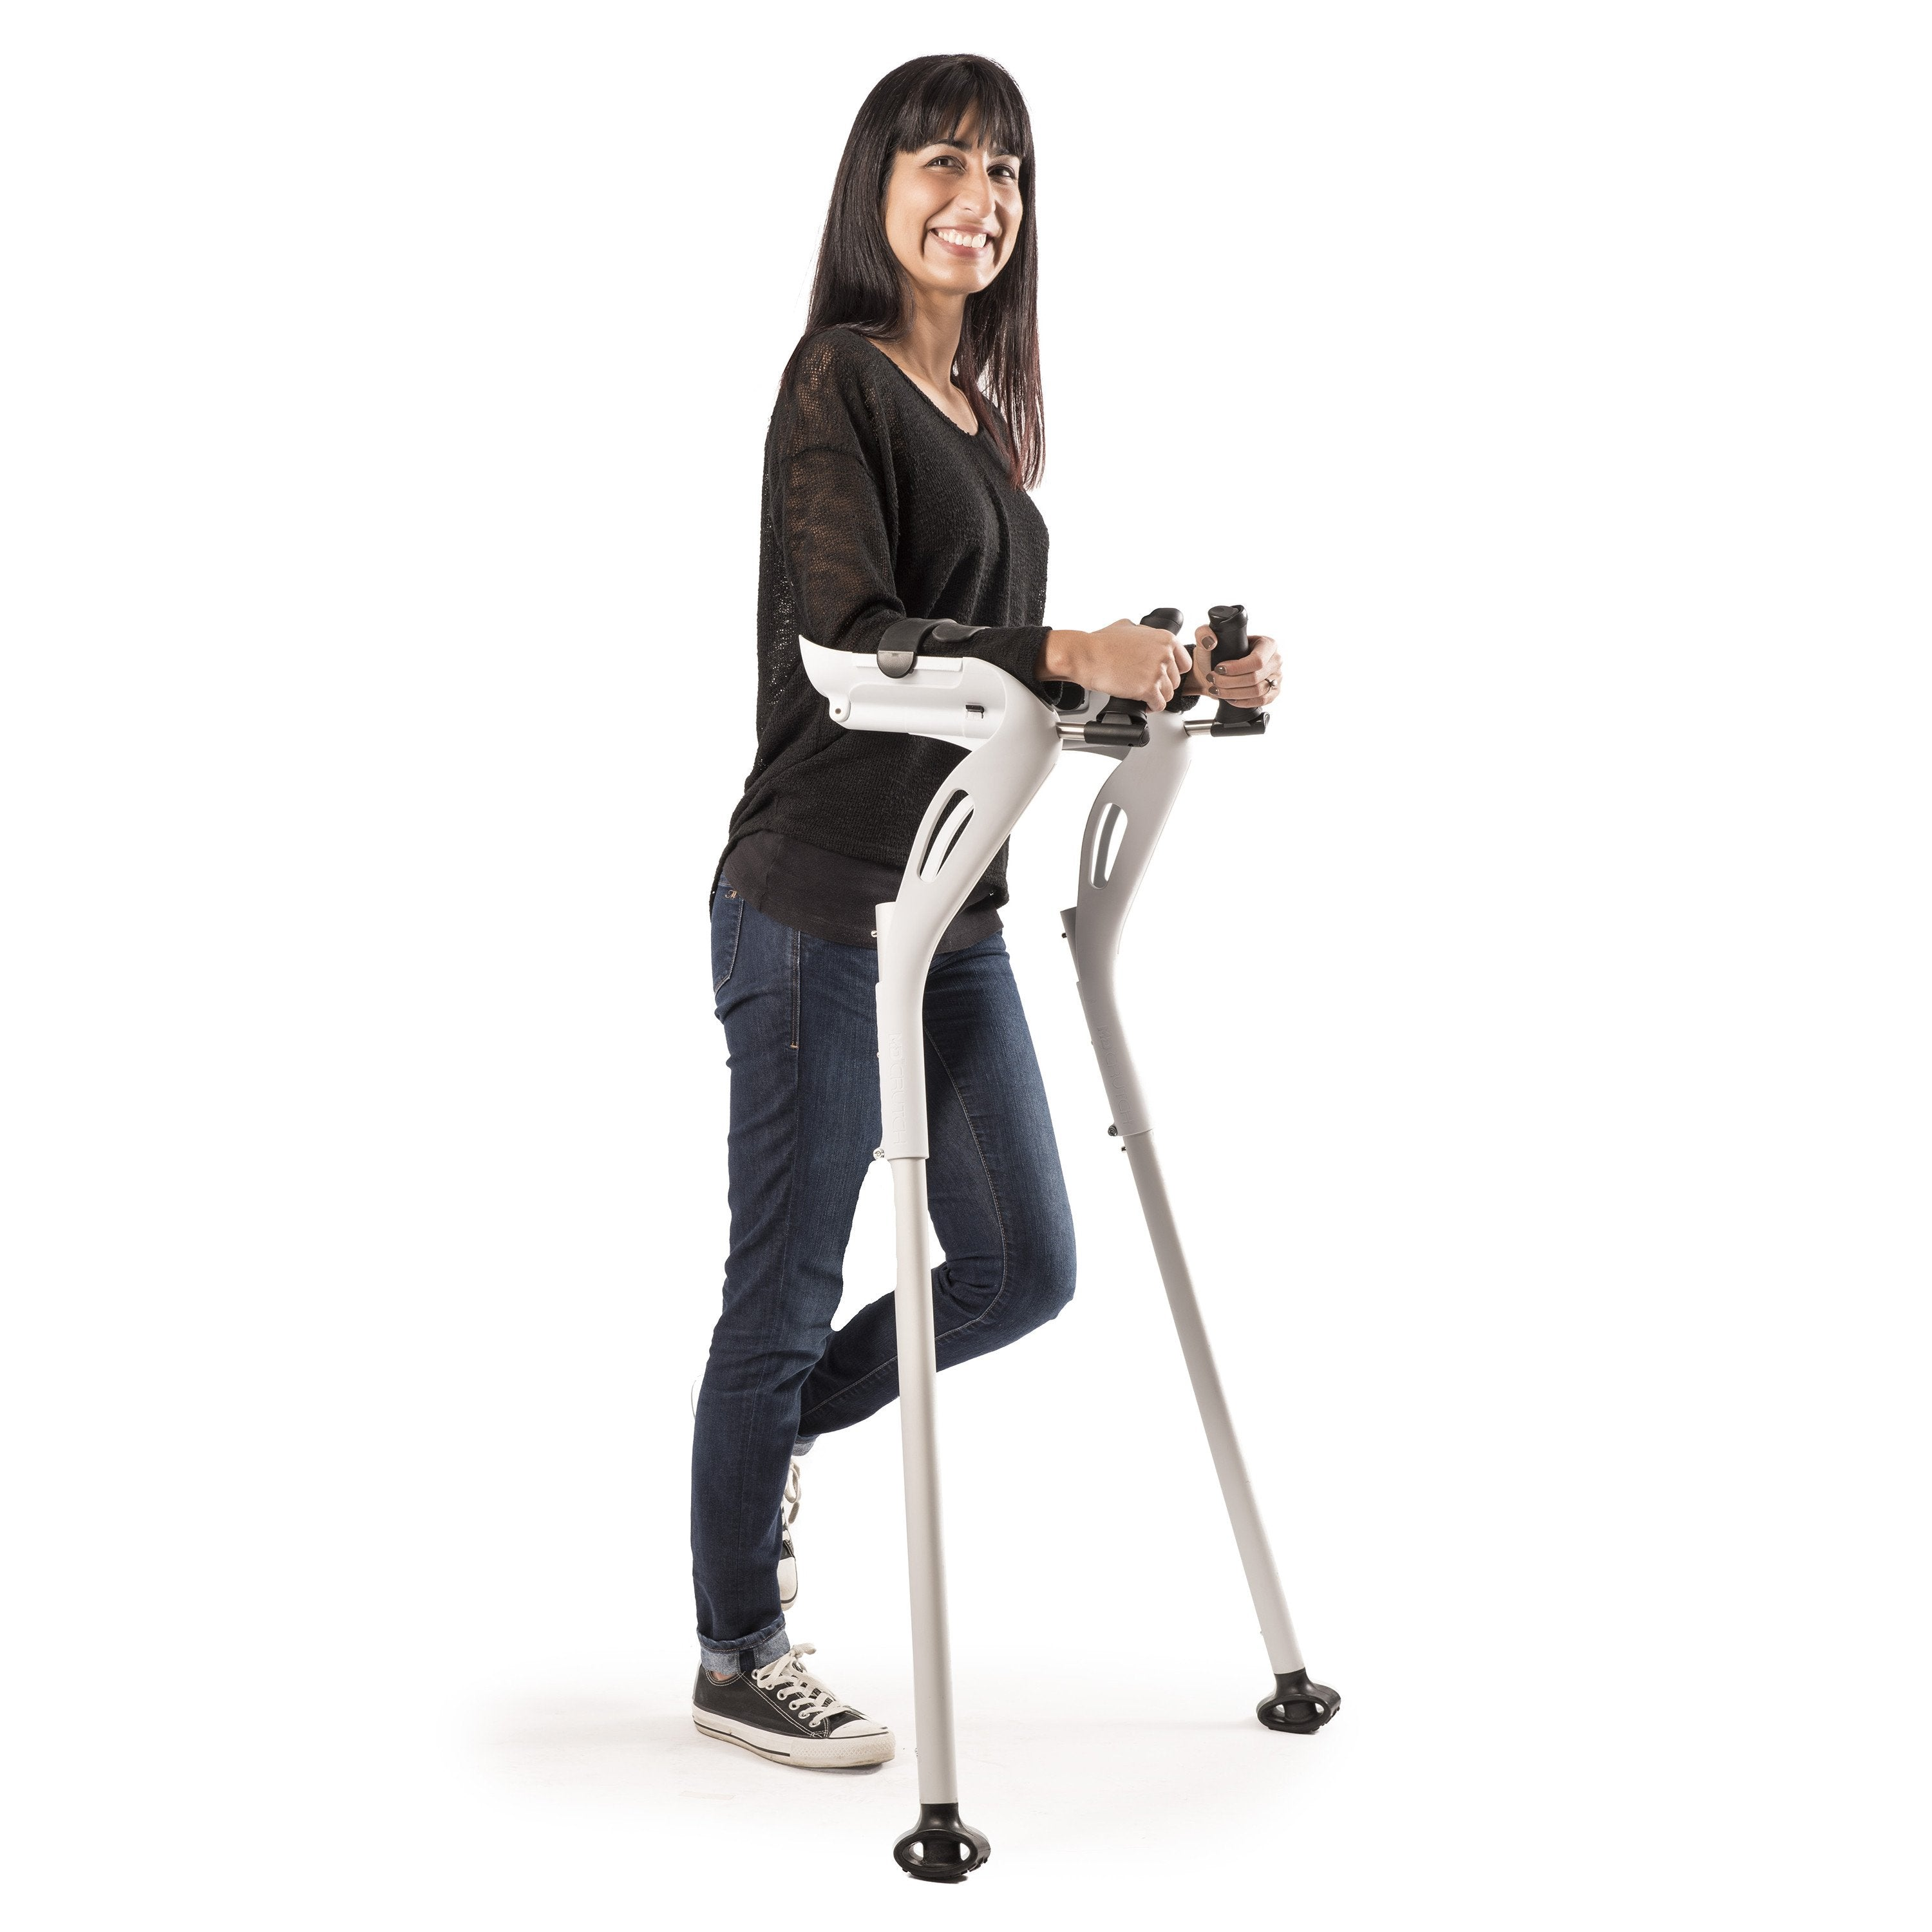 The M+D Crutches are designed to remove pressure on the armpits, wrists and hands,  increasing mobility and reducing pain